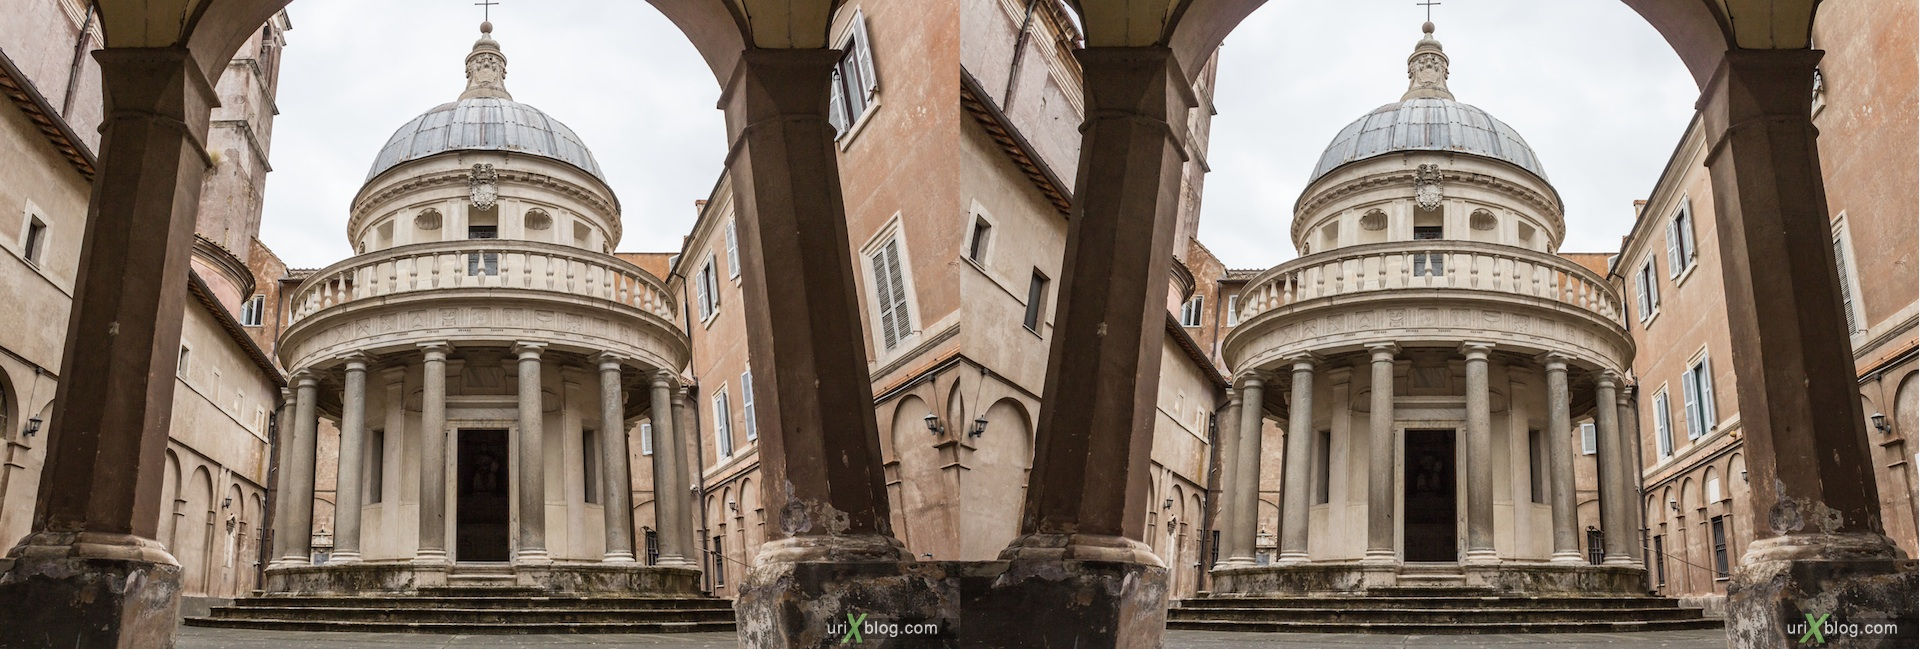 2012, Tempietto of San Pietro in Montorio, Rome, Italy, cathedral, monastery, Christianity, Catholicism, 3D, stereo pair, cross-eyed, crossview, cross view stereo pair